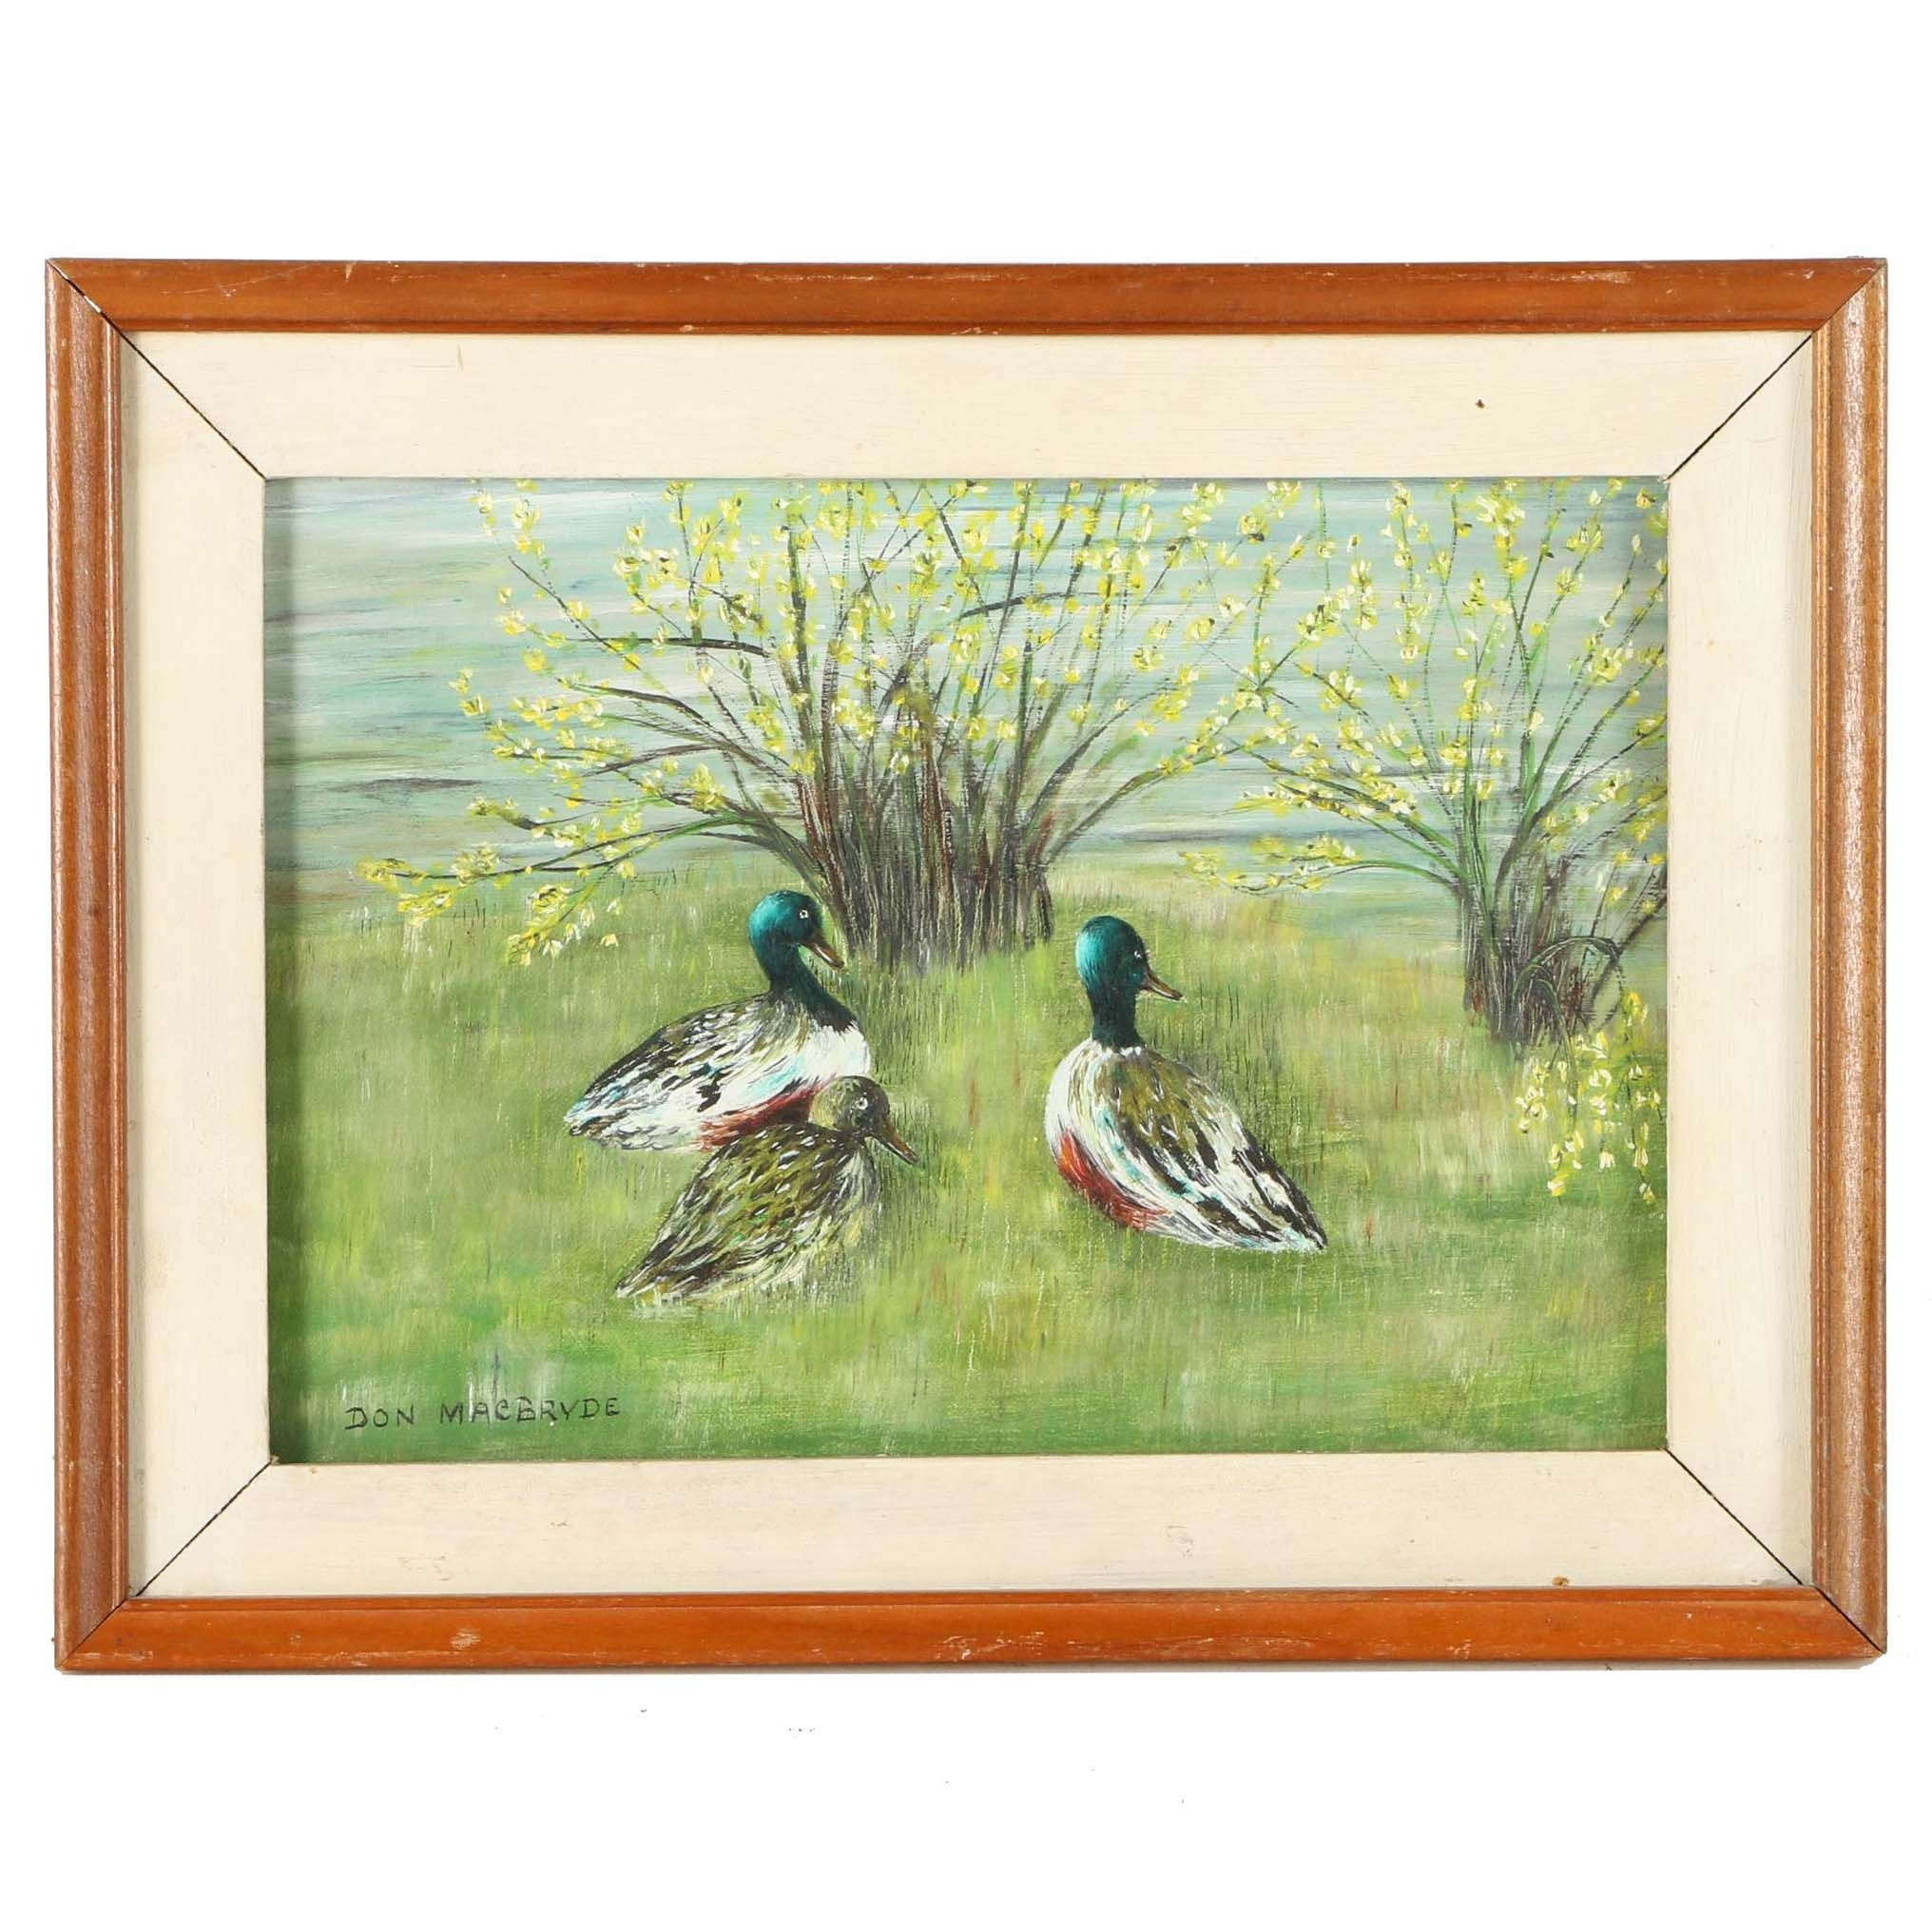 Don MacBryde Oil Painting on Canvas of Mallards